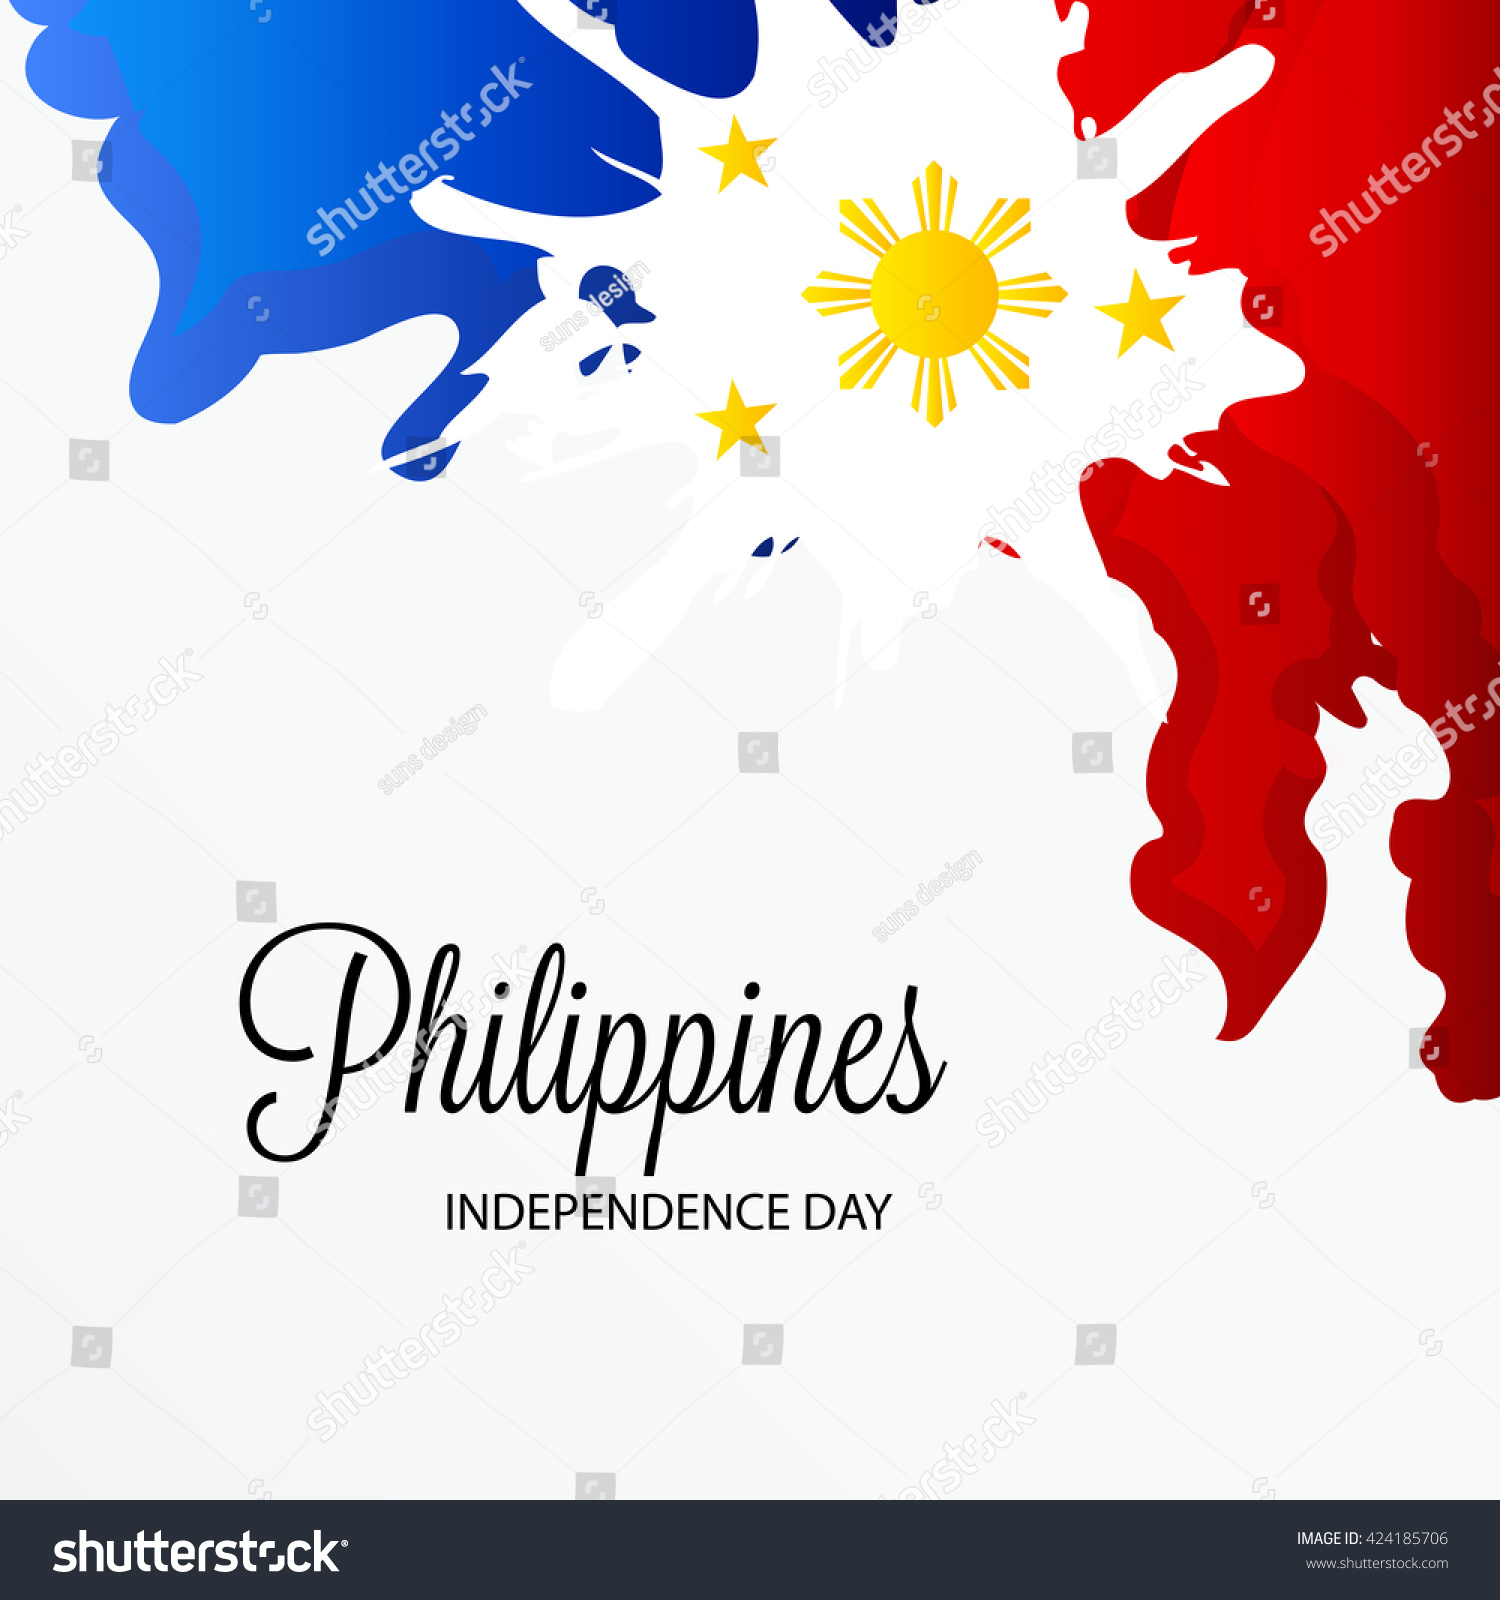 Image Result For Philippine Independence Day